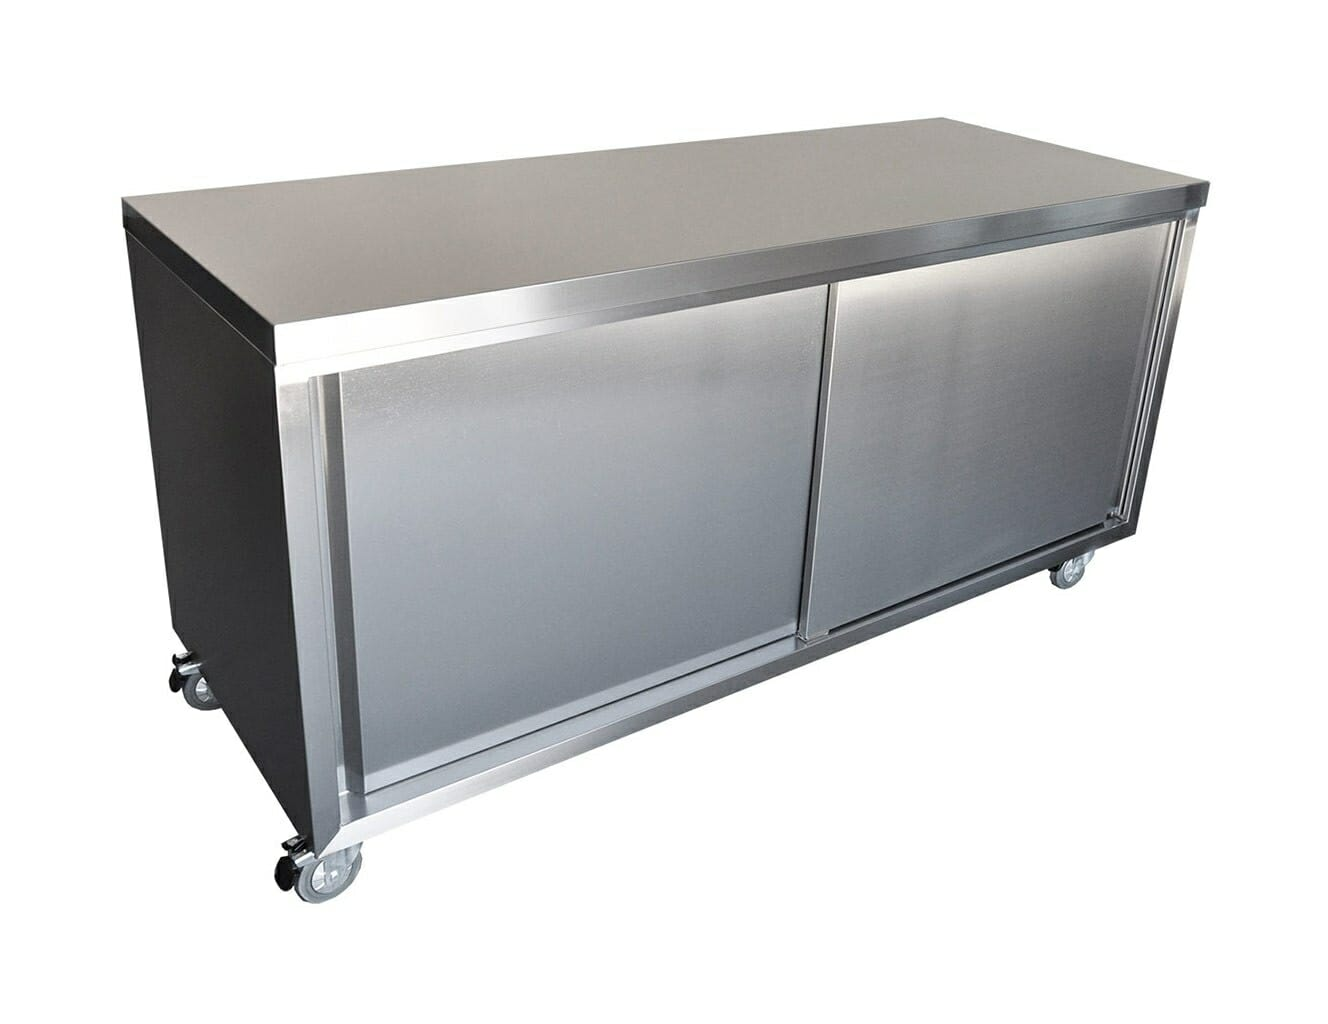 Stainless Steel Commercial Cabinet, 1200 x 700 x 900mm high.